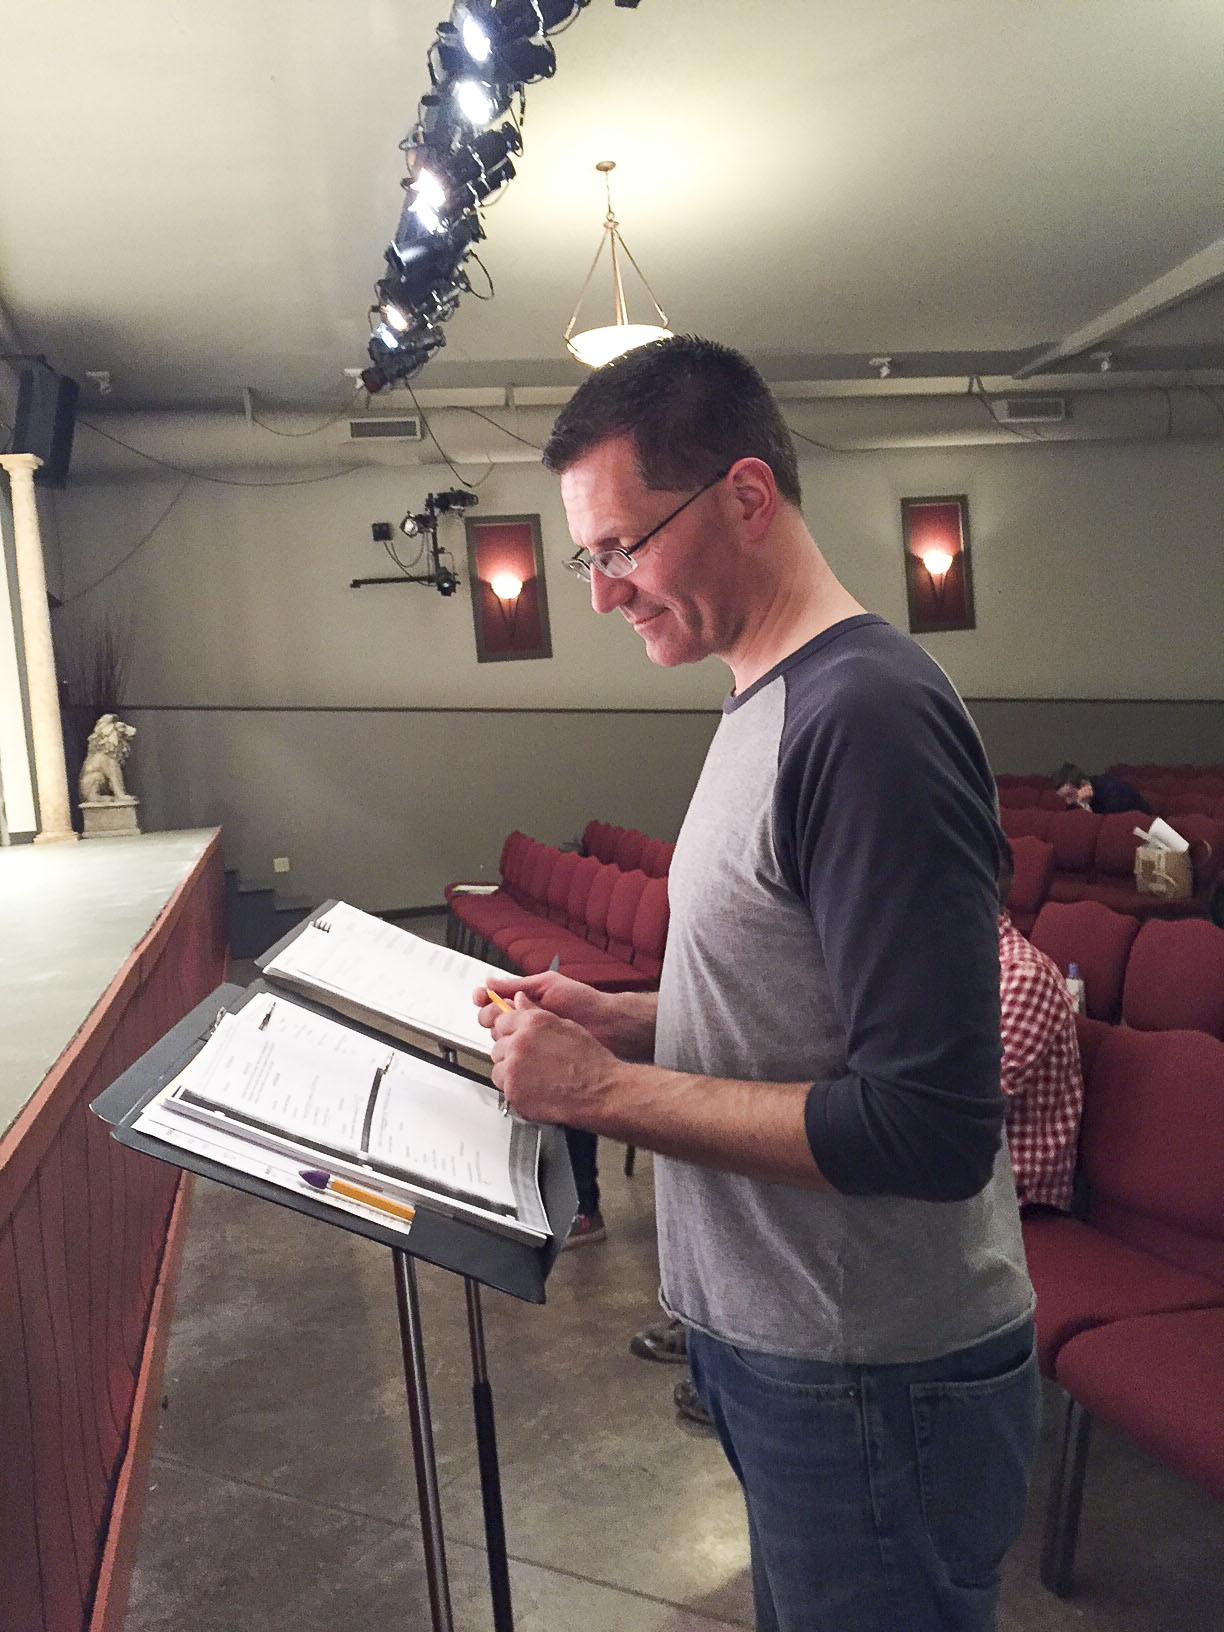 Wayne Marek looks over the A Funny Thing Happened On The Way To The Forum script and gives out direction to actors on stage.